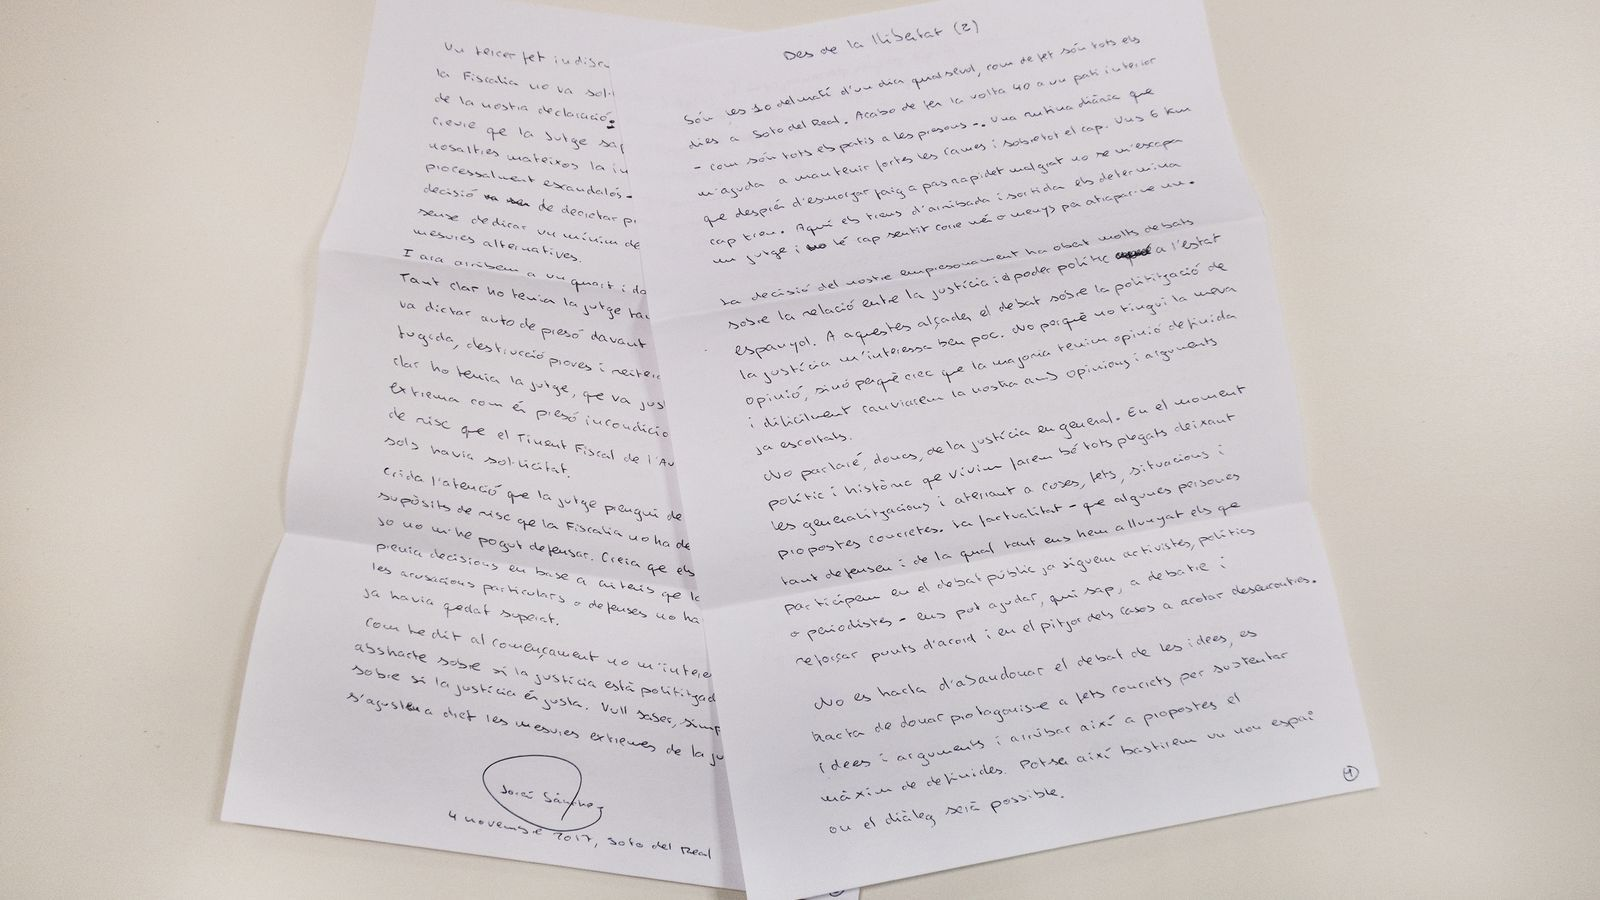 Read the second letter by Jordi Sànchez from Soto del Real prison